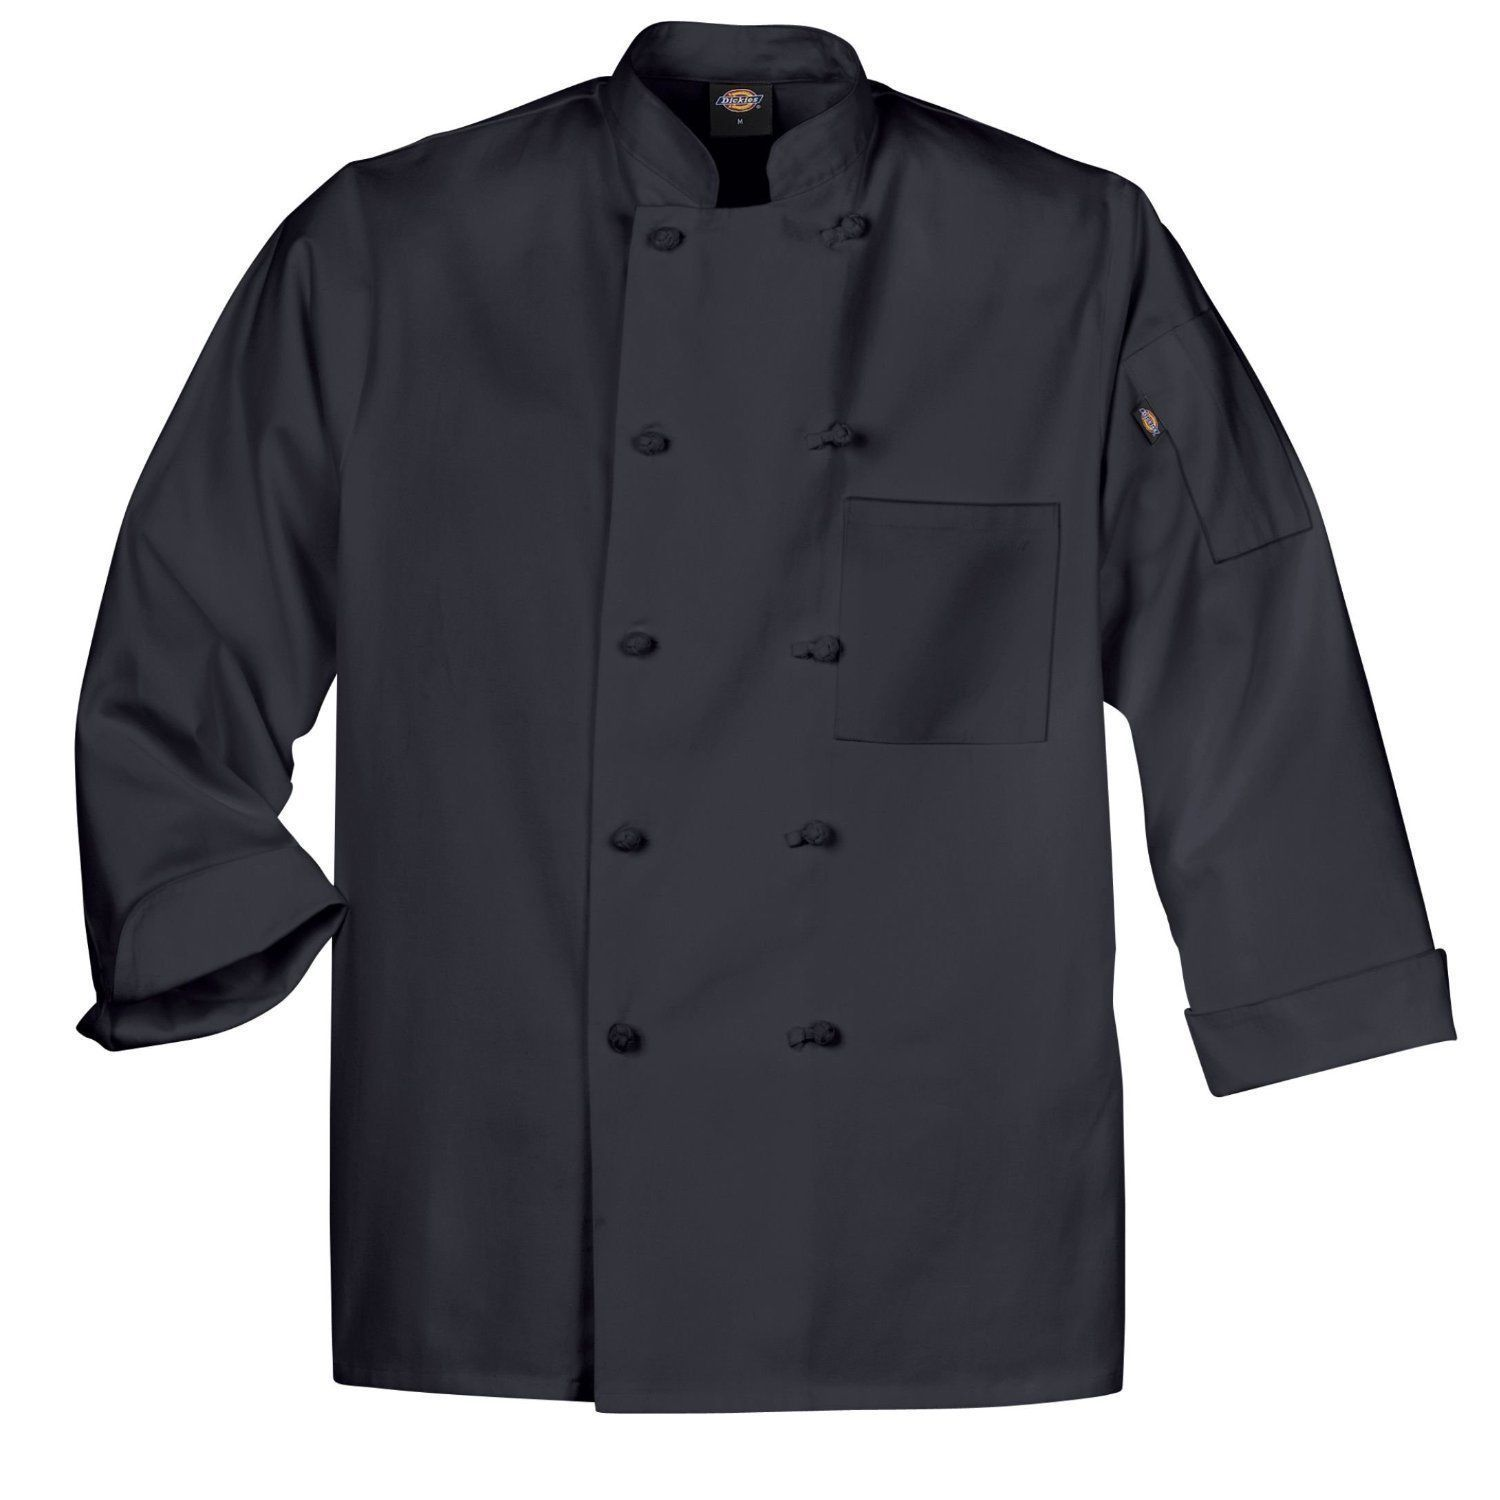 Dickies Chef Jacket M DCP109 BLK Cloth Knot Button Black Uniform Coat Bled New